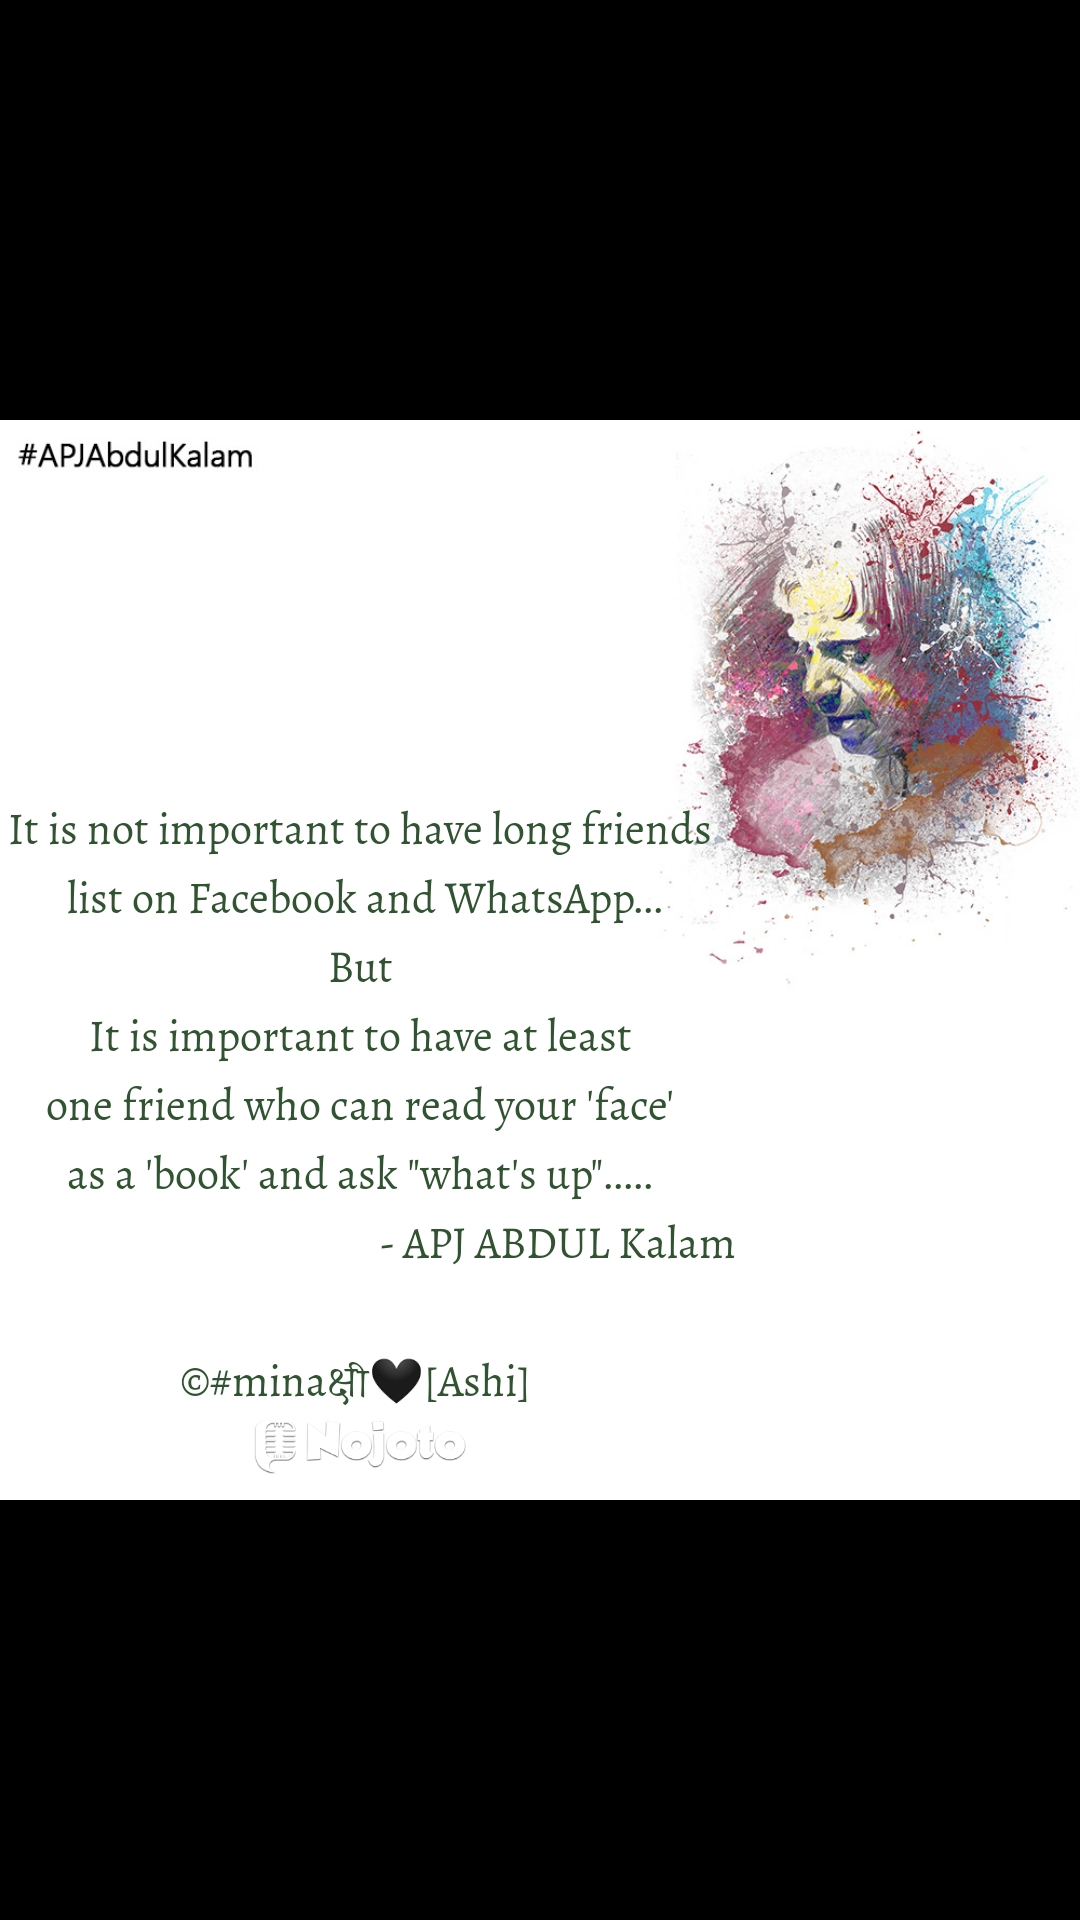 """#APJAbdulKalam                It is not important to have long friends  list on Facebook and WhatsApp... But It is important to have at least  one friend who can read your 'face'   as a 'book' and ask """"what's up"""".....                                              - APJ ABDUL Kalam  ©#minaक्षी🖤[Ashi]"""